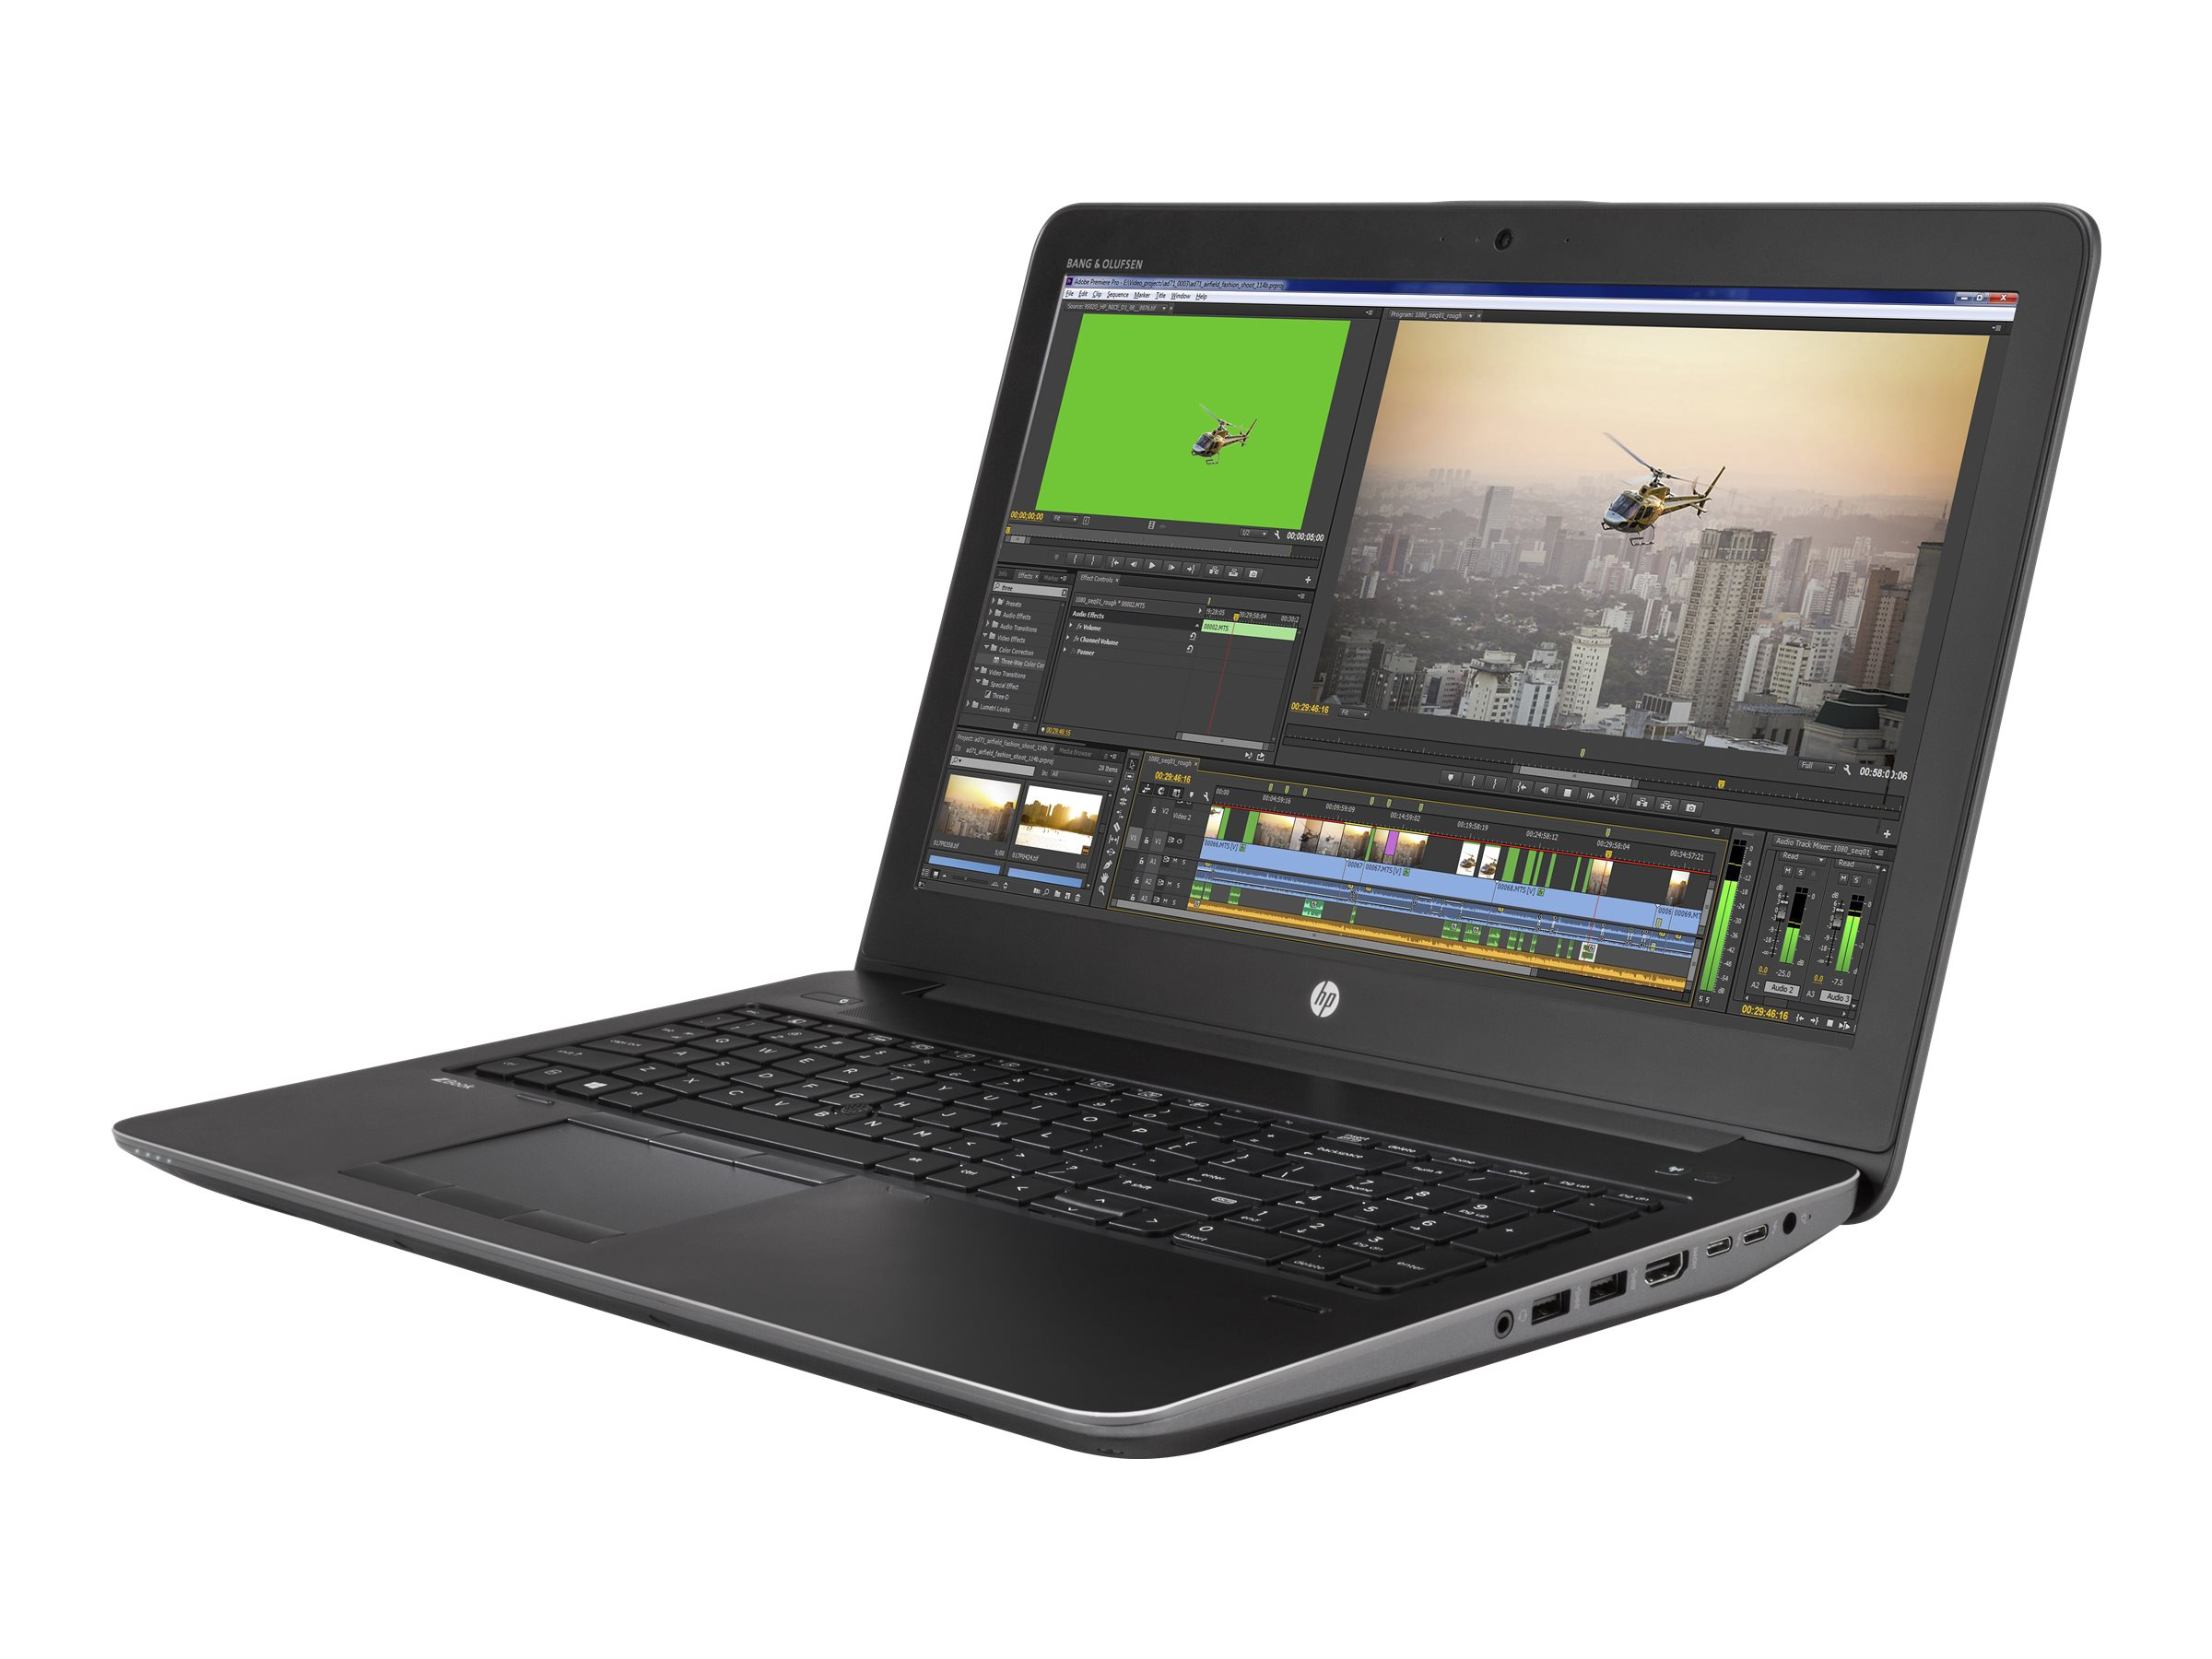 HP ZBook 15 G3 Mobile Workstation - Core i7 6820HQ / 2.7 GHz - Win 7 Pro 64-bit (mit Win 10 Pro 64-bit Lizenz) - 16 GB RAM - 256 GB SSD HP Z Turbo Drive - 39.6 cm (15.6